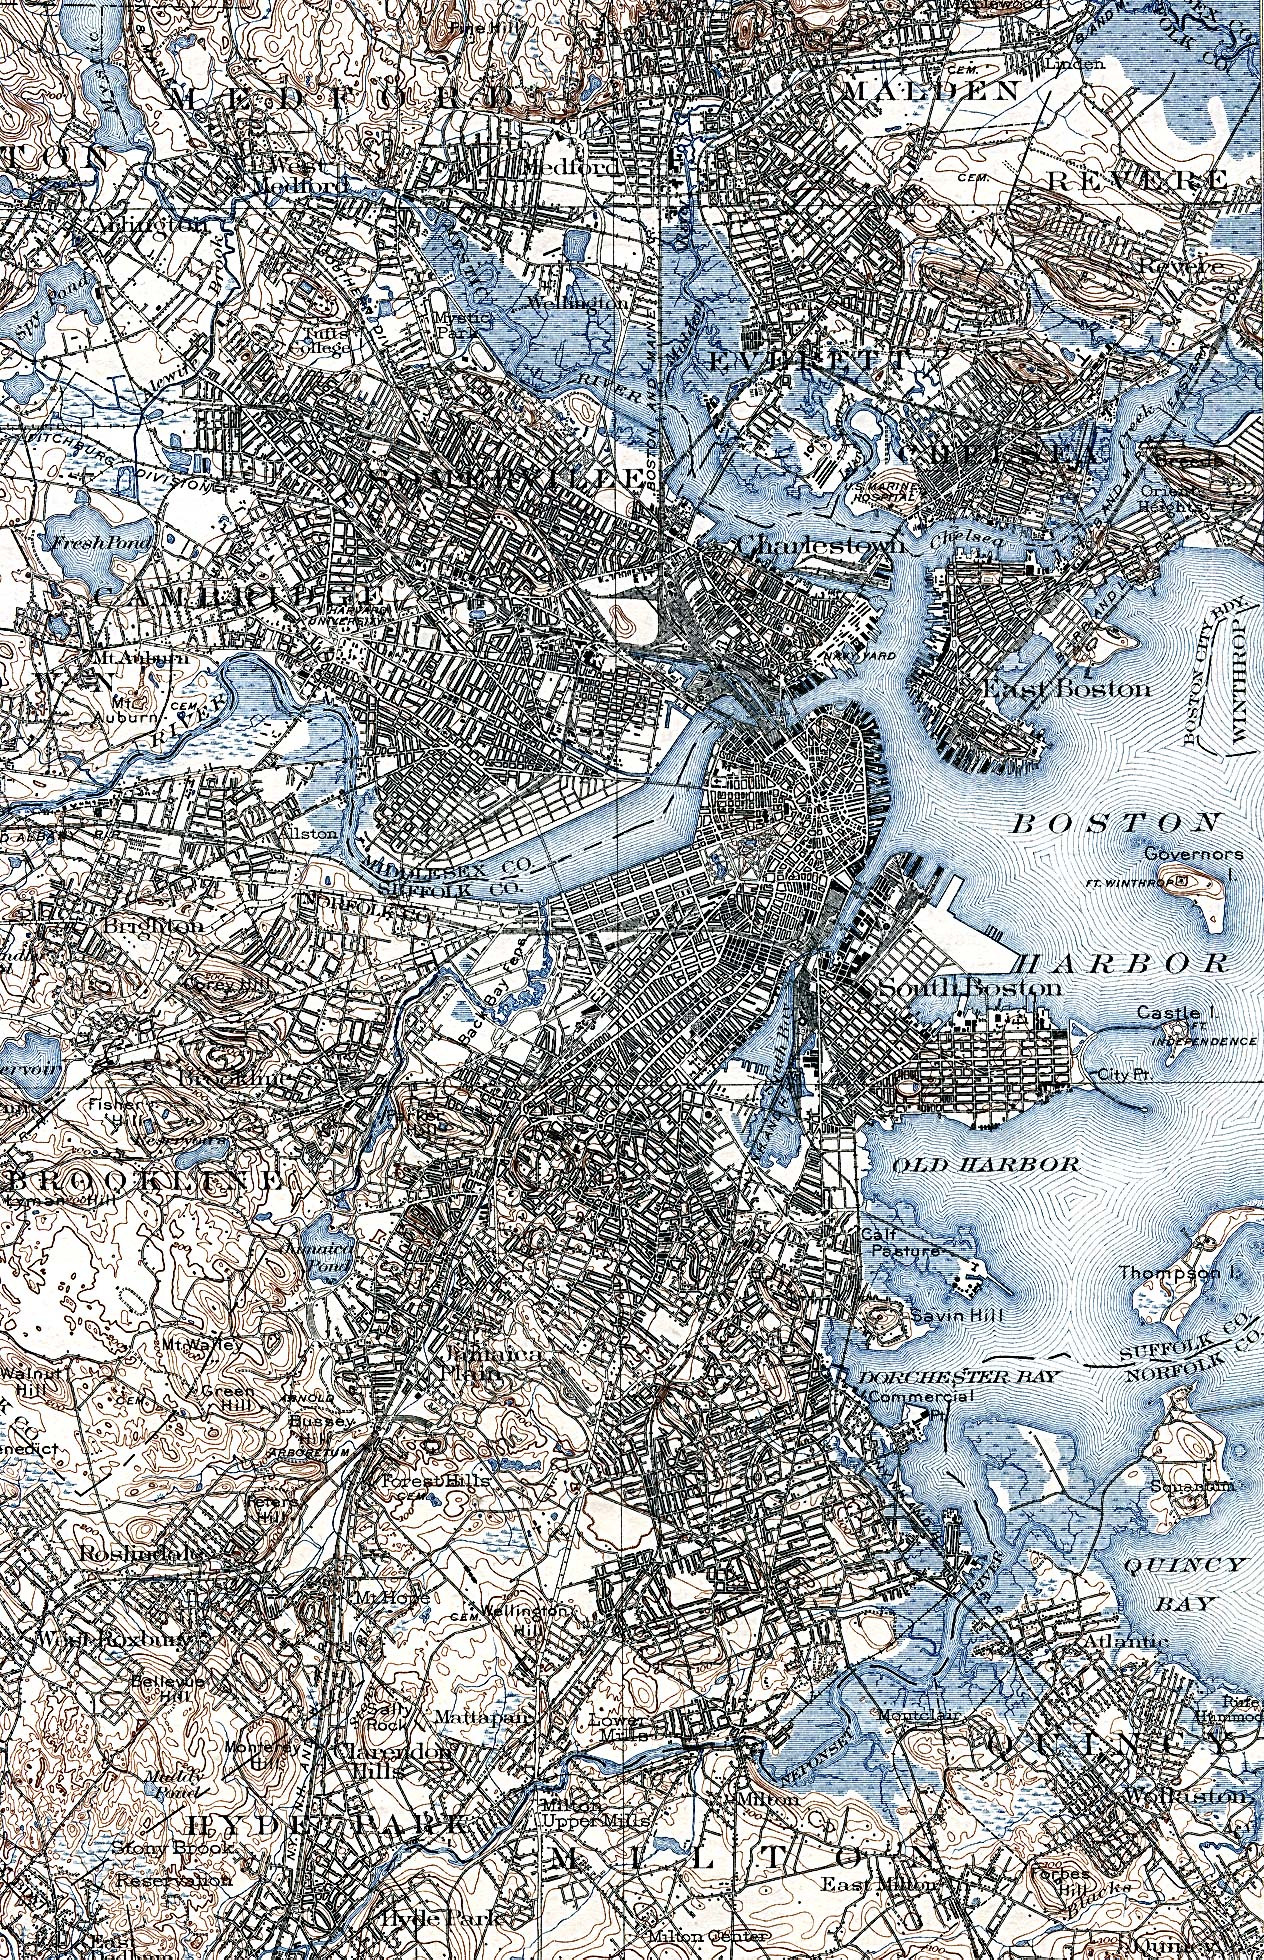 Mapa de la Ciudad de Boston, Massachusetts, Estados Unidos 1903